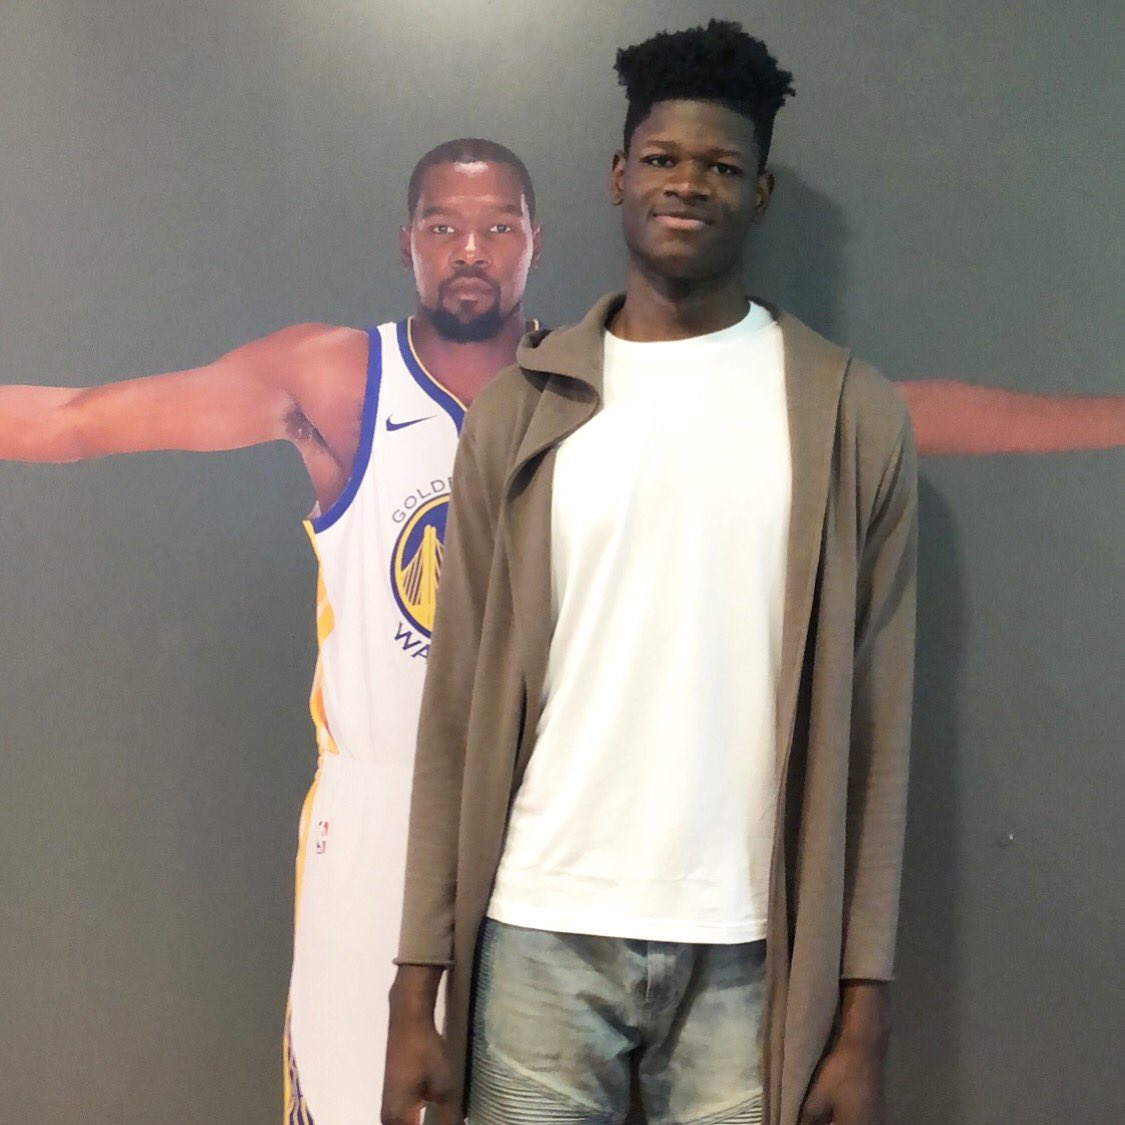 Two @TexasMBB Longhorns.  Finals MVP Kevin Durant & #NBADraft Prospect Mo Bamba! https://t.co/4vrh2aPBPN